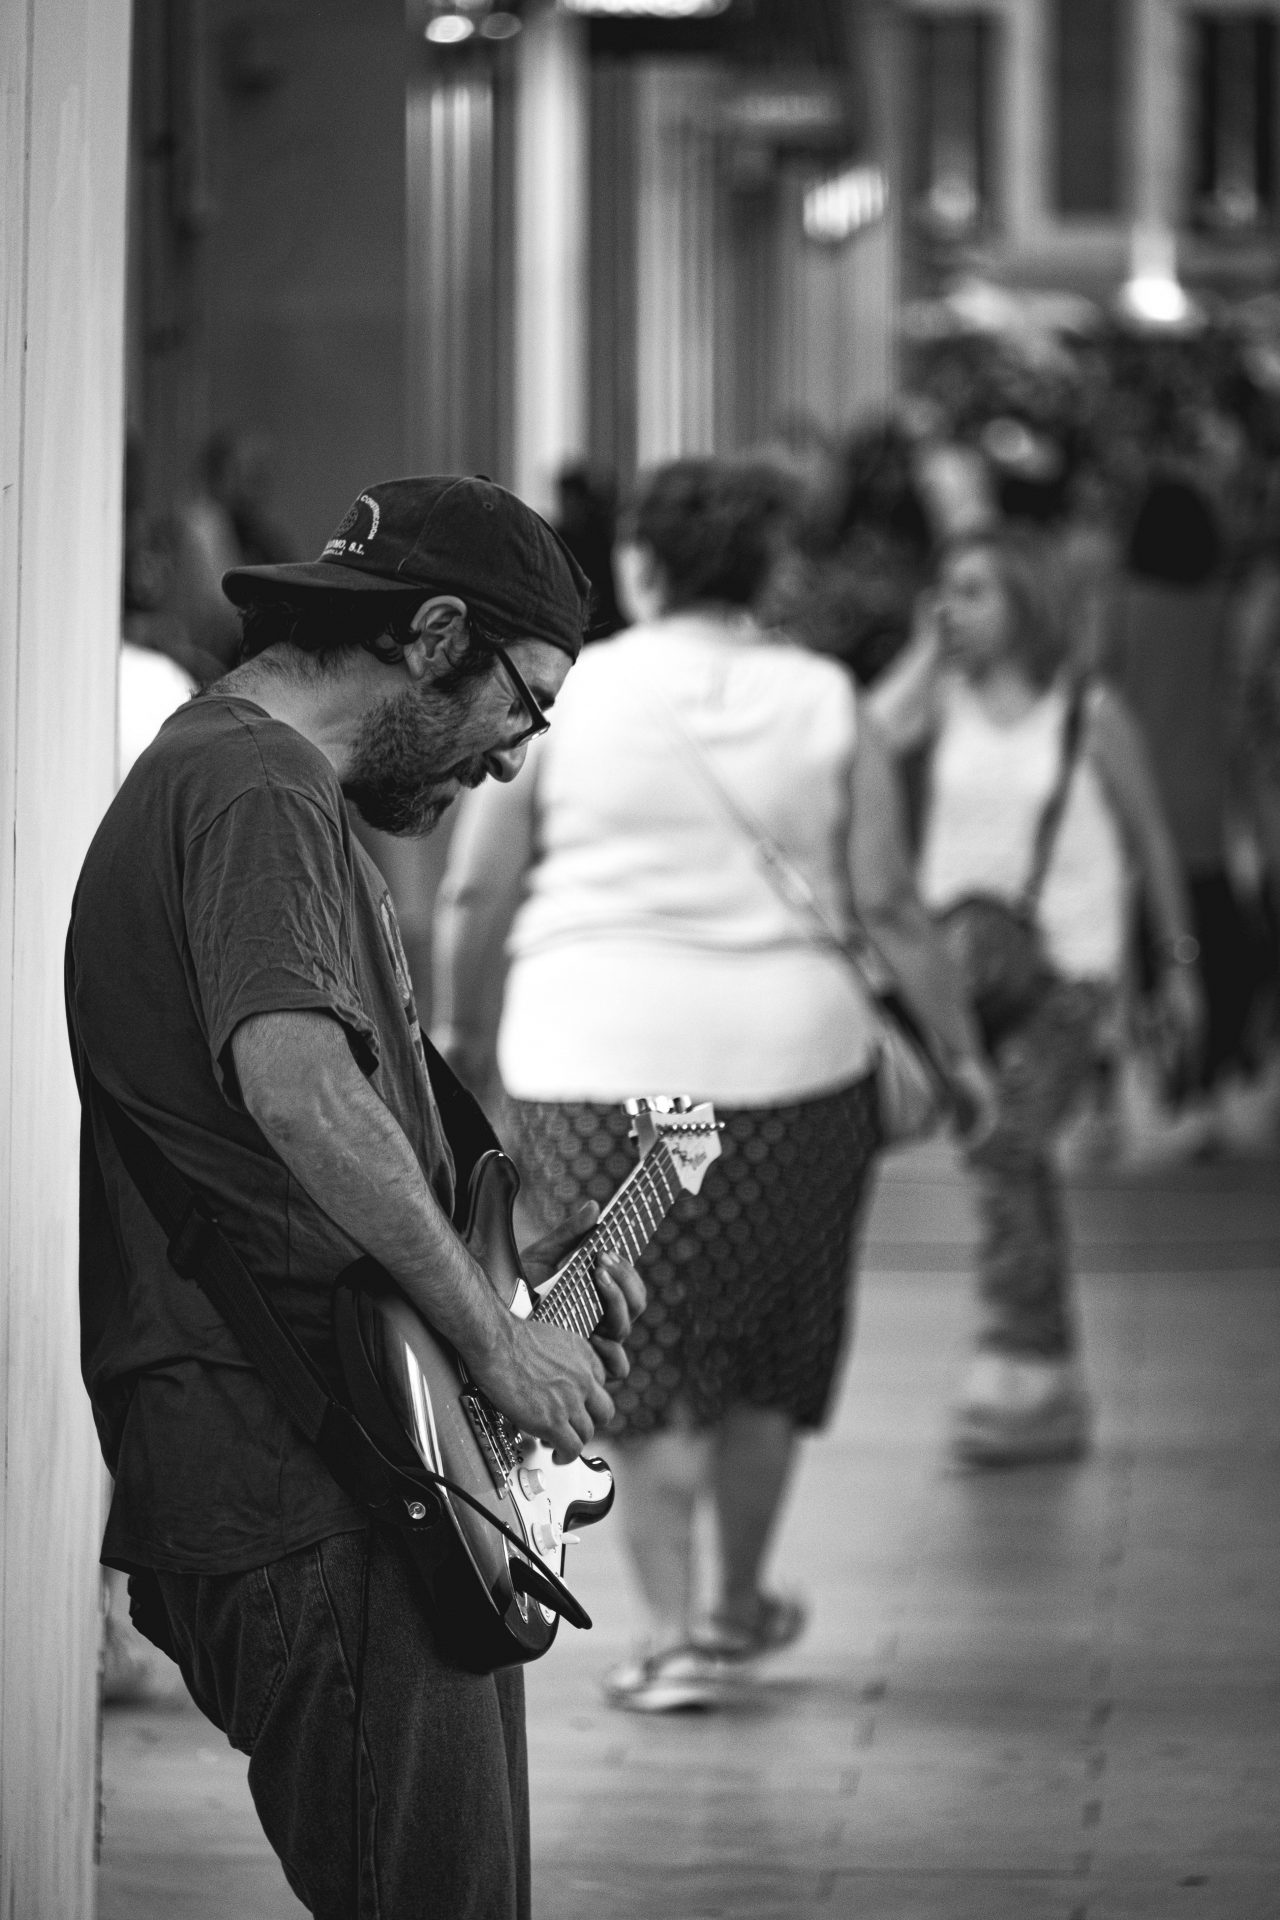 Men playing the guitar in the streets of madrid near Callao photo by Jo Kassis